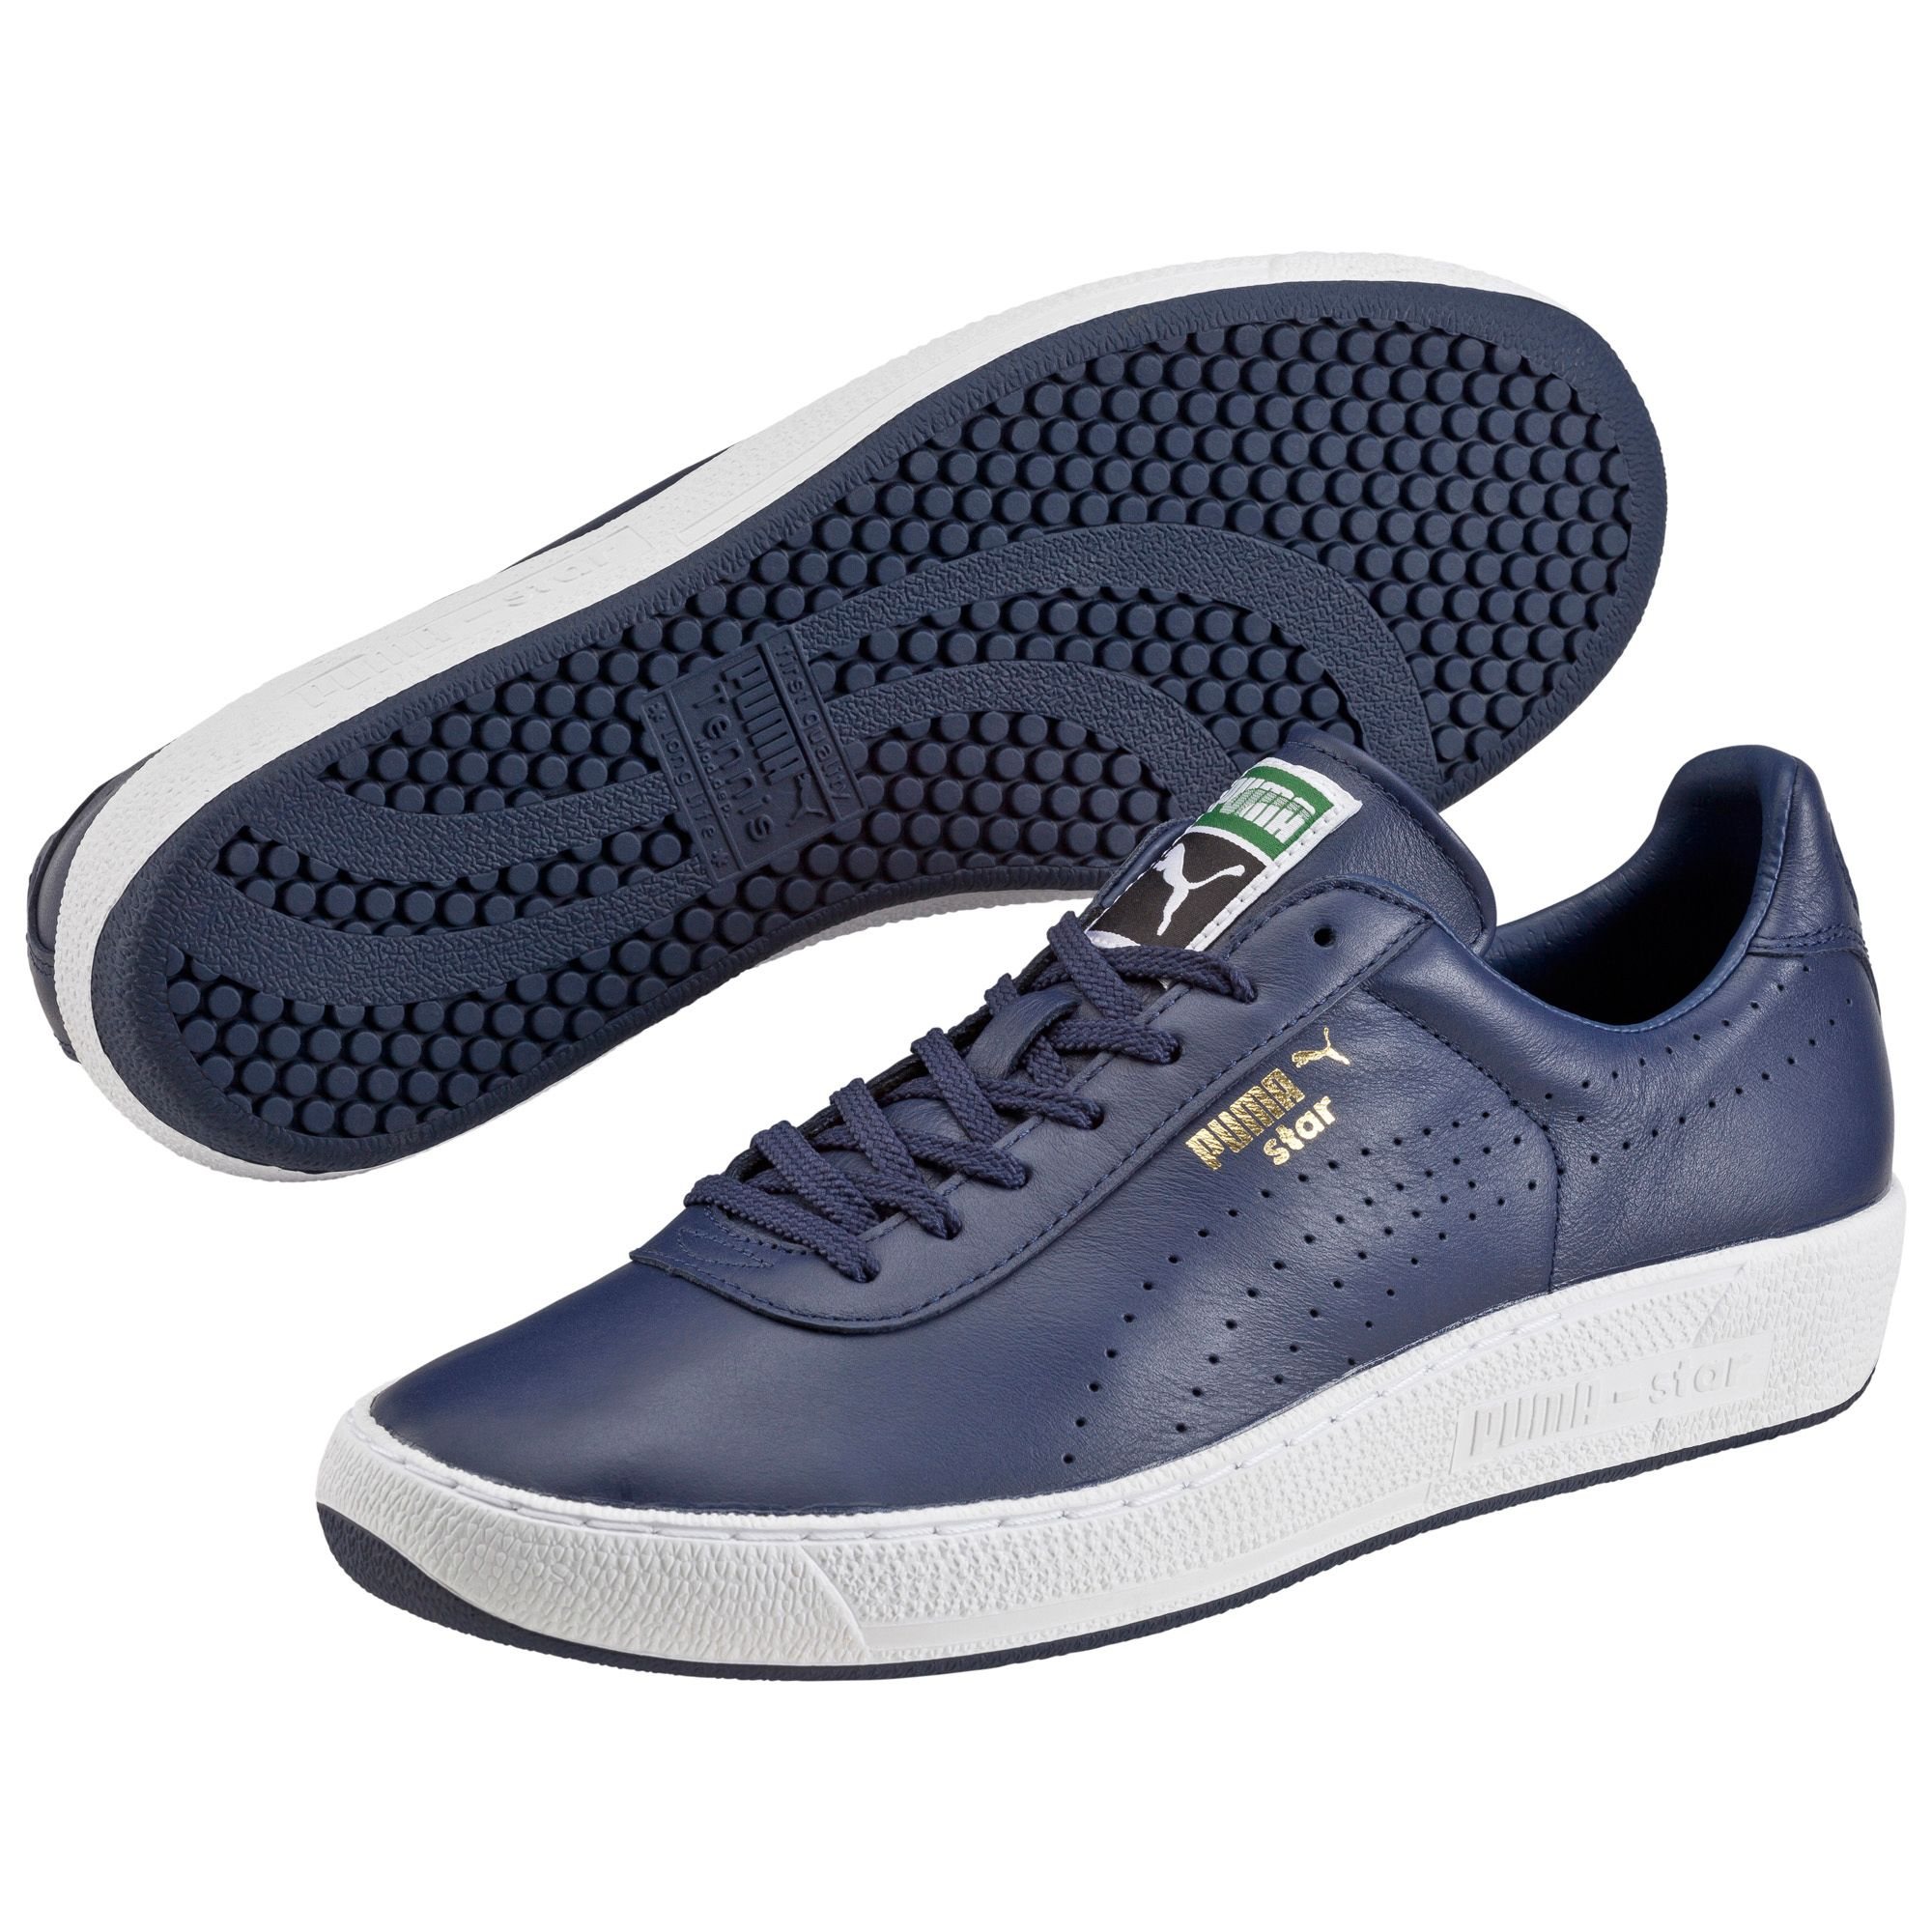 puma star sneaker schuhe turnschuhe sportklassiker herren neu ebay. Black Bedroom Furniture Sets. Home Design Ideas